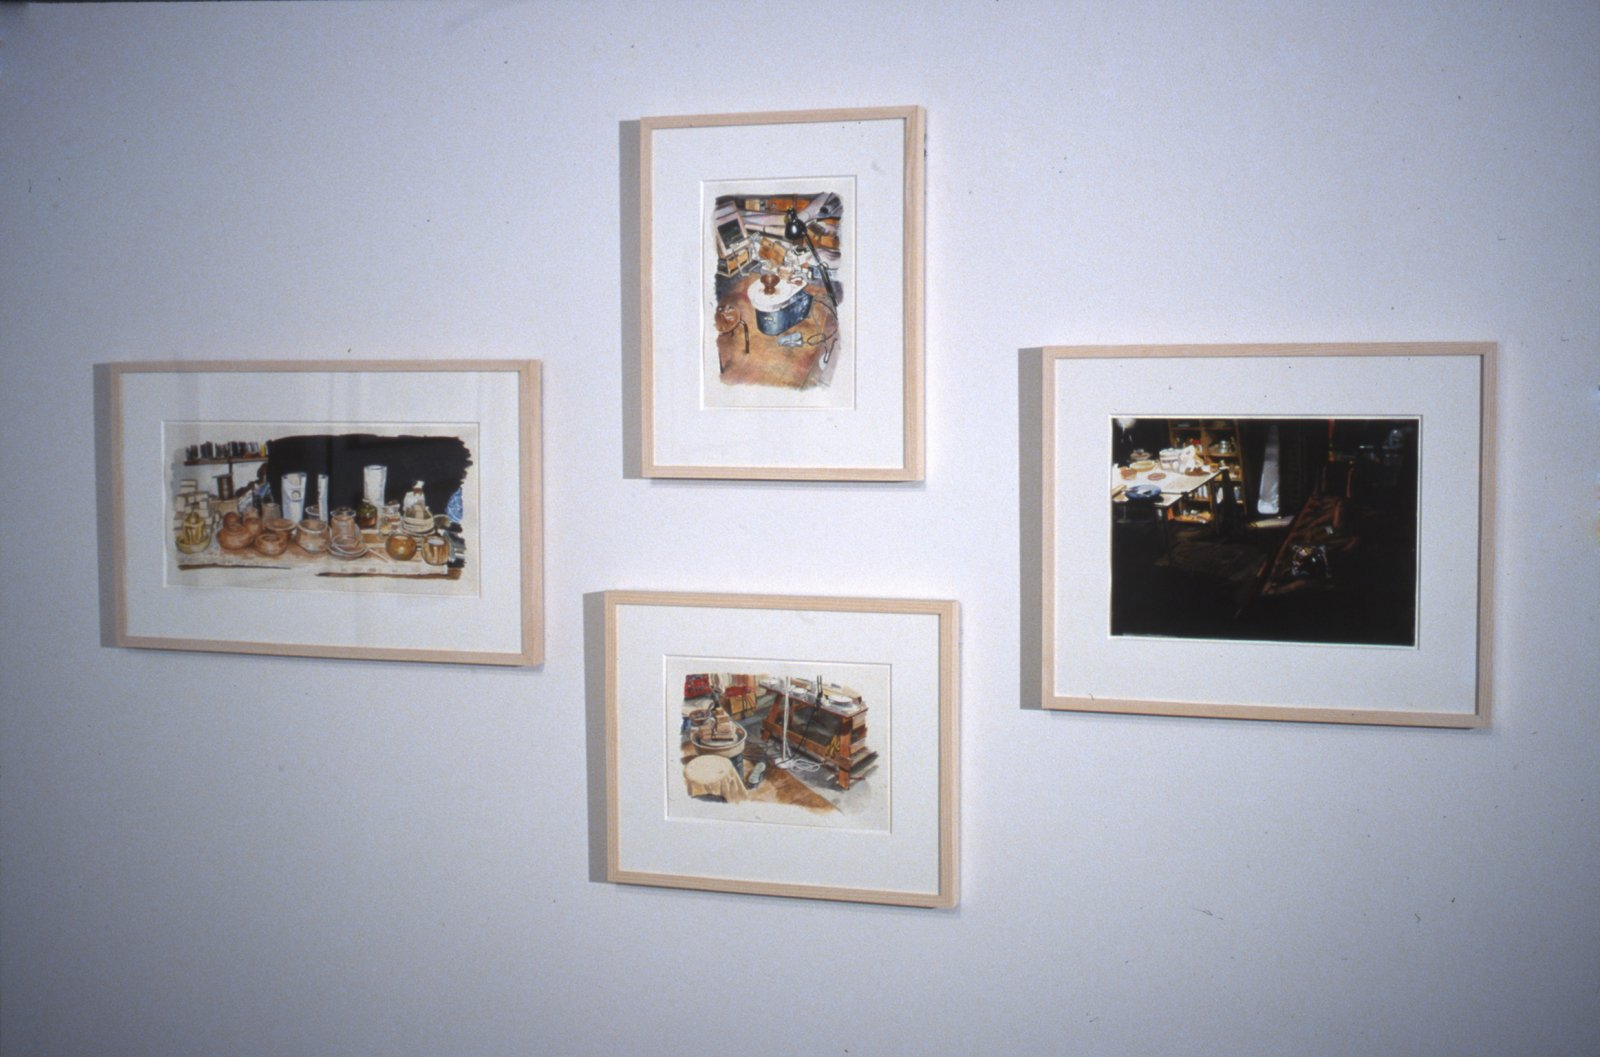 Damian Moppett, installation view, The Visible Work, Contemporary Art Gallery, Vancouver, 2005 by Damian Moppett